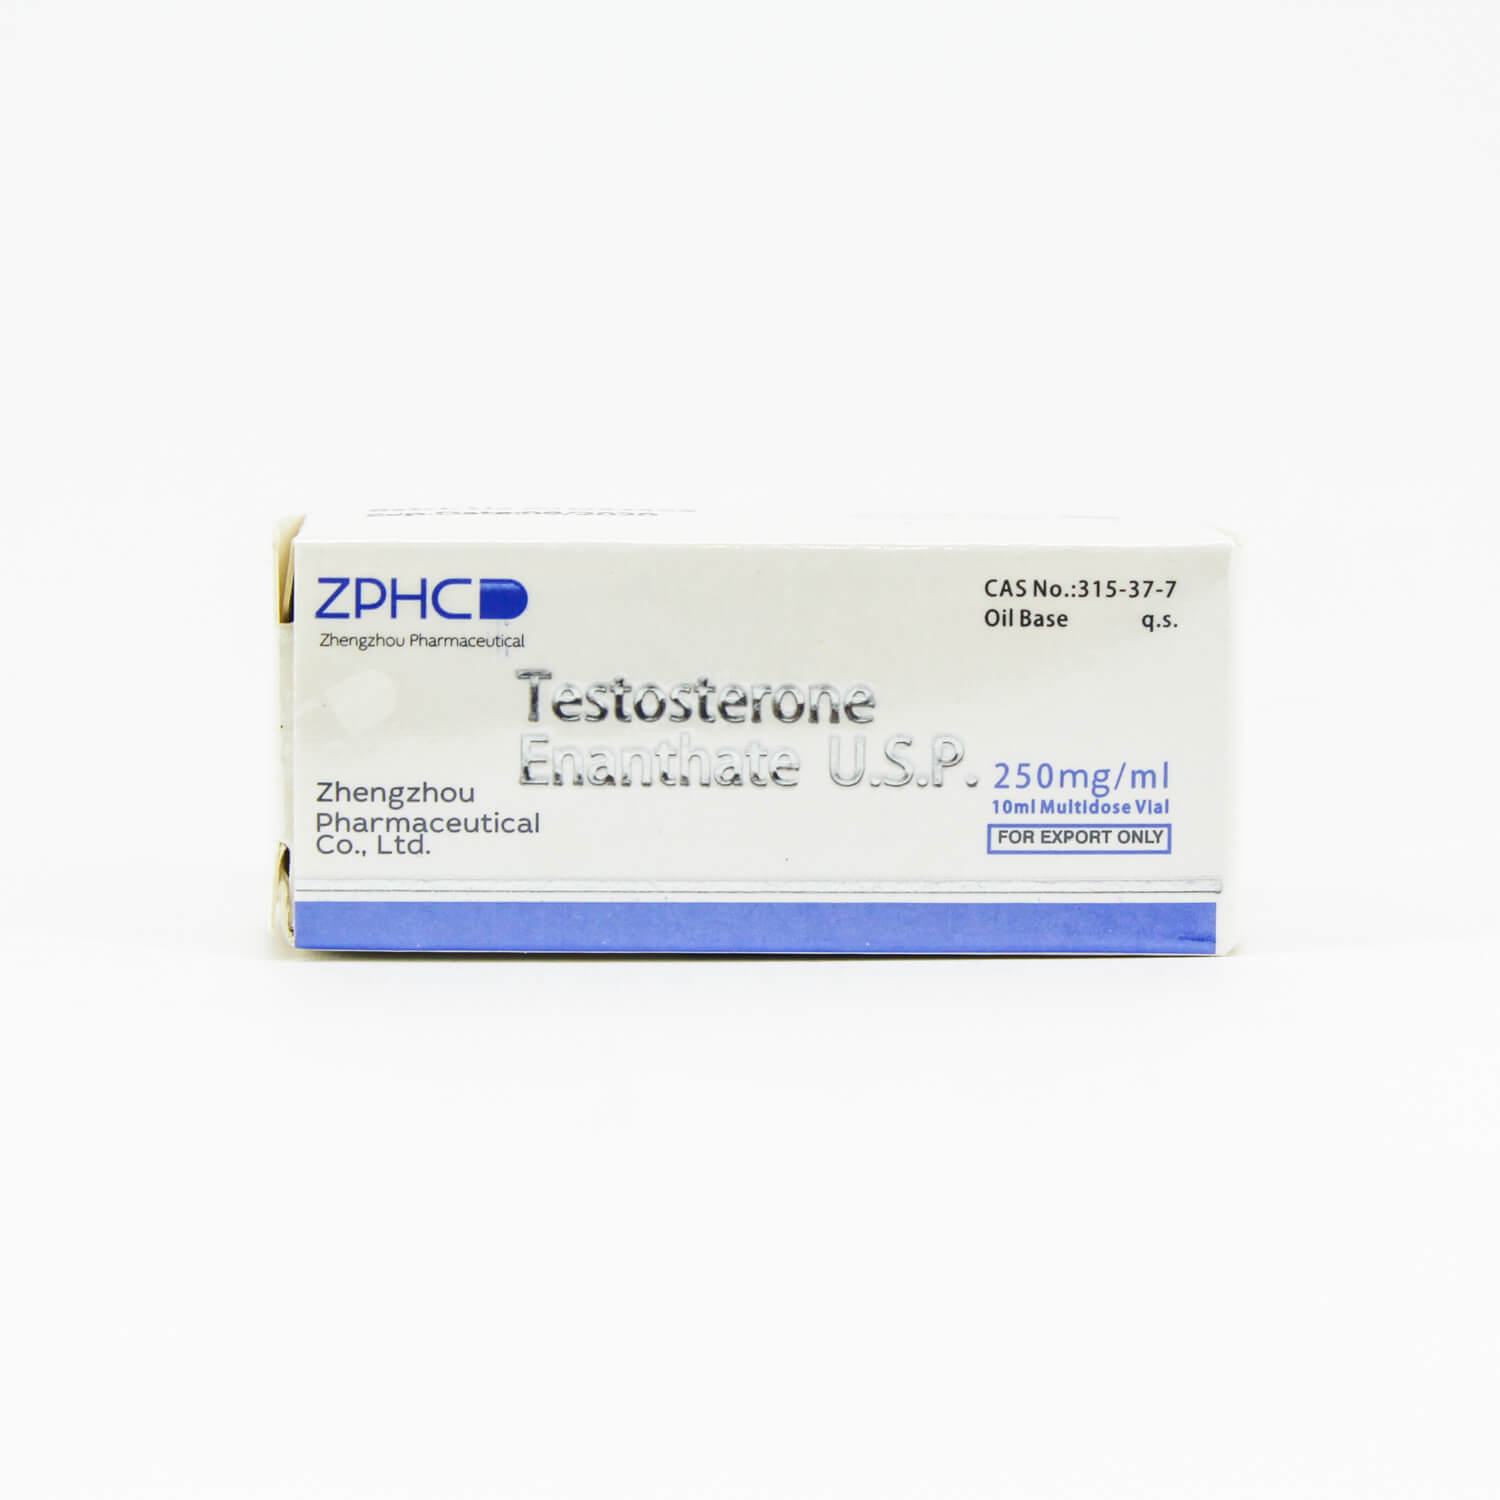 Testosterone Enanthate 250mg/ml ZPHC USA domestic